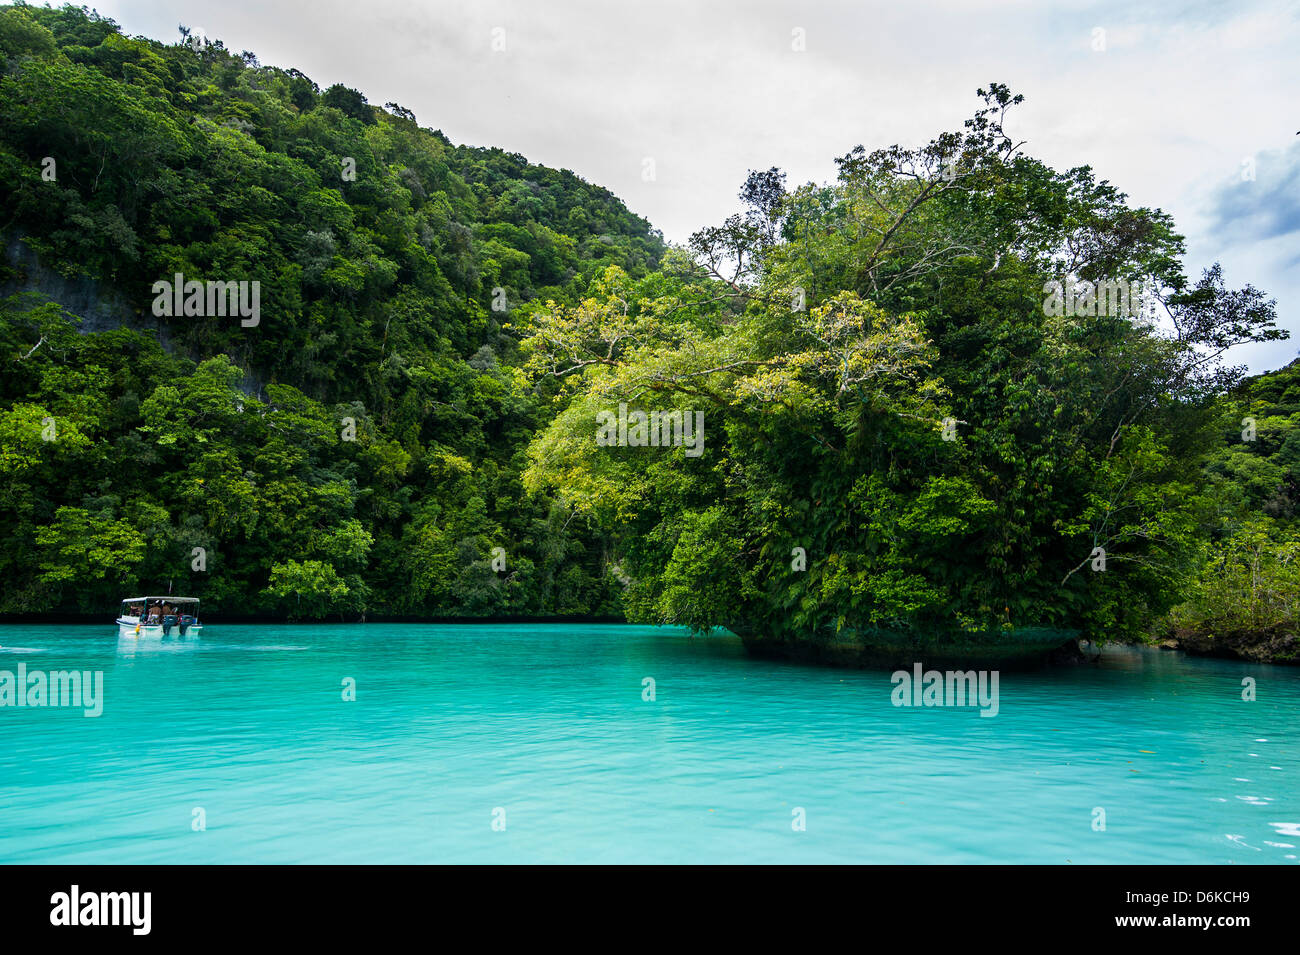 Turquoise waters in the Rock islands, Palau, Central Pacific, Pacific - Stock Image